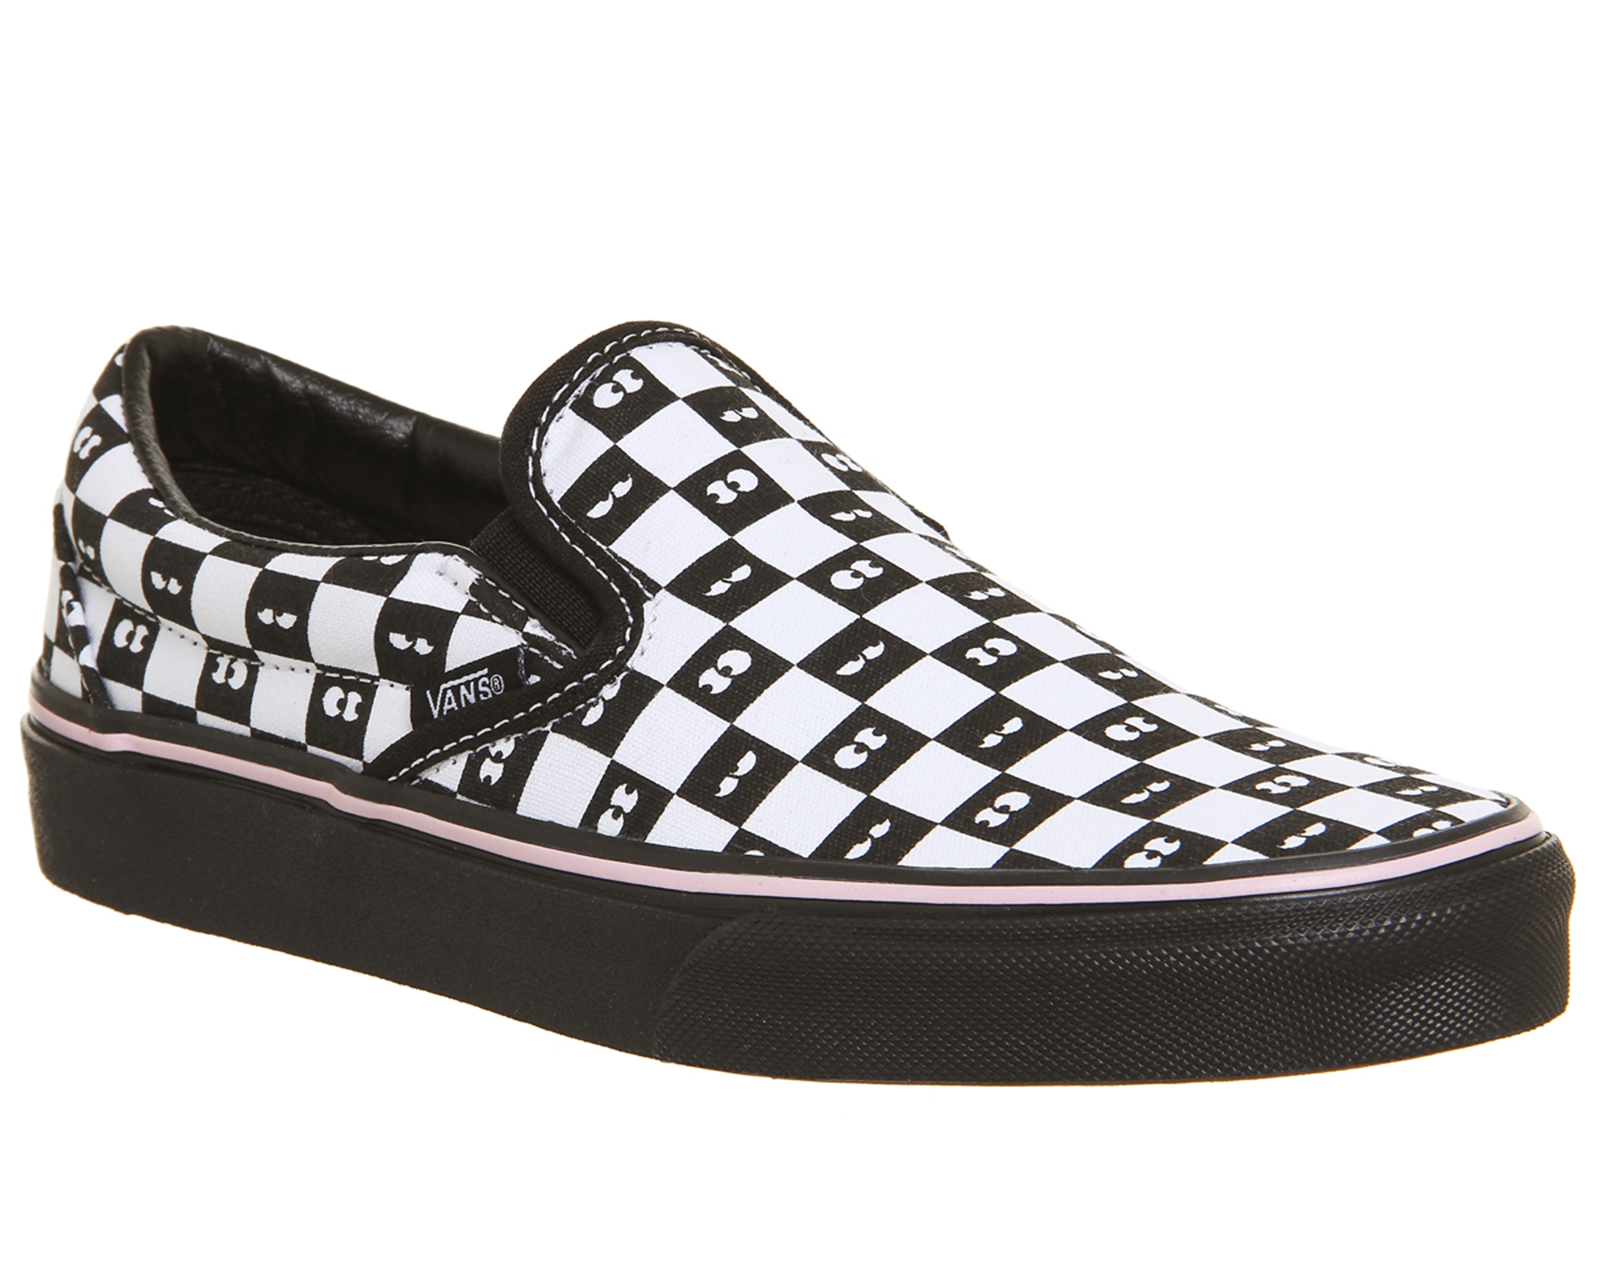 61e6b6623efdbb Sentinel Womens Vans Vans Classic Slip On Trainers Lazy Oaf Eyeballs  Checkerboard Trainer